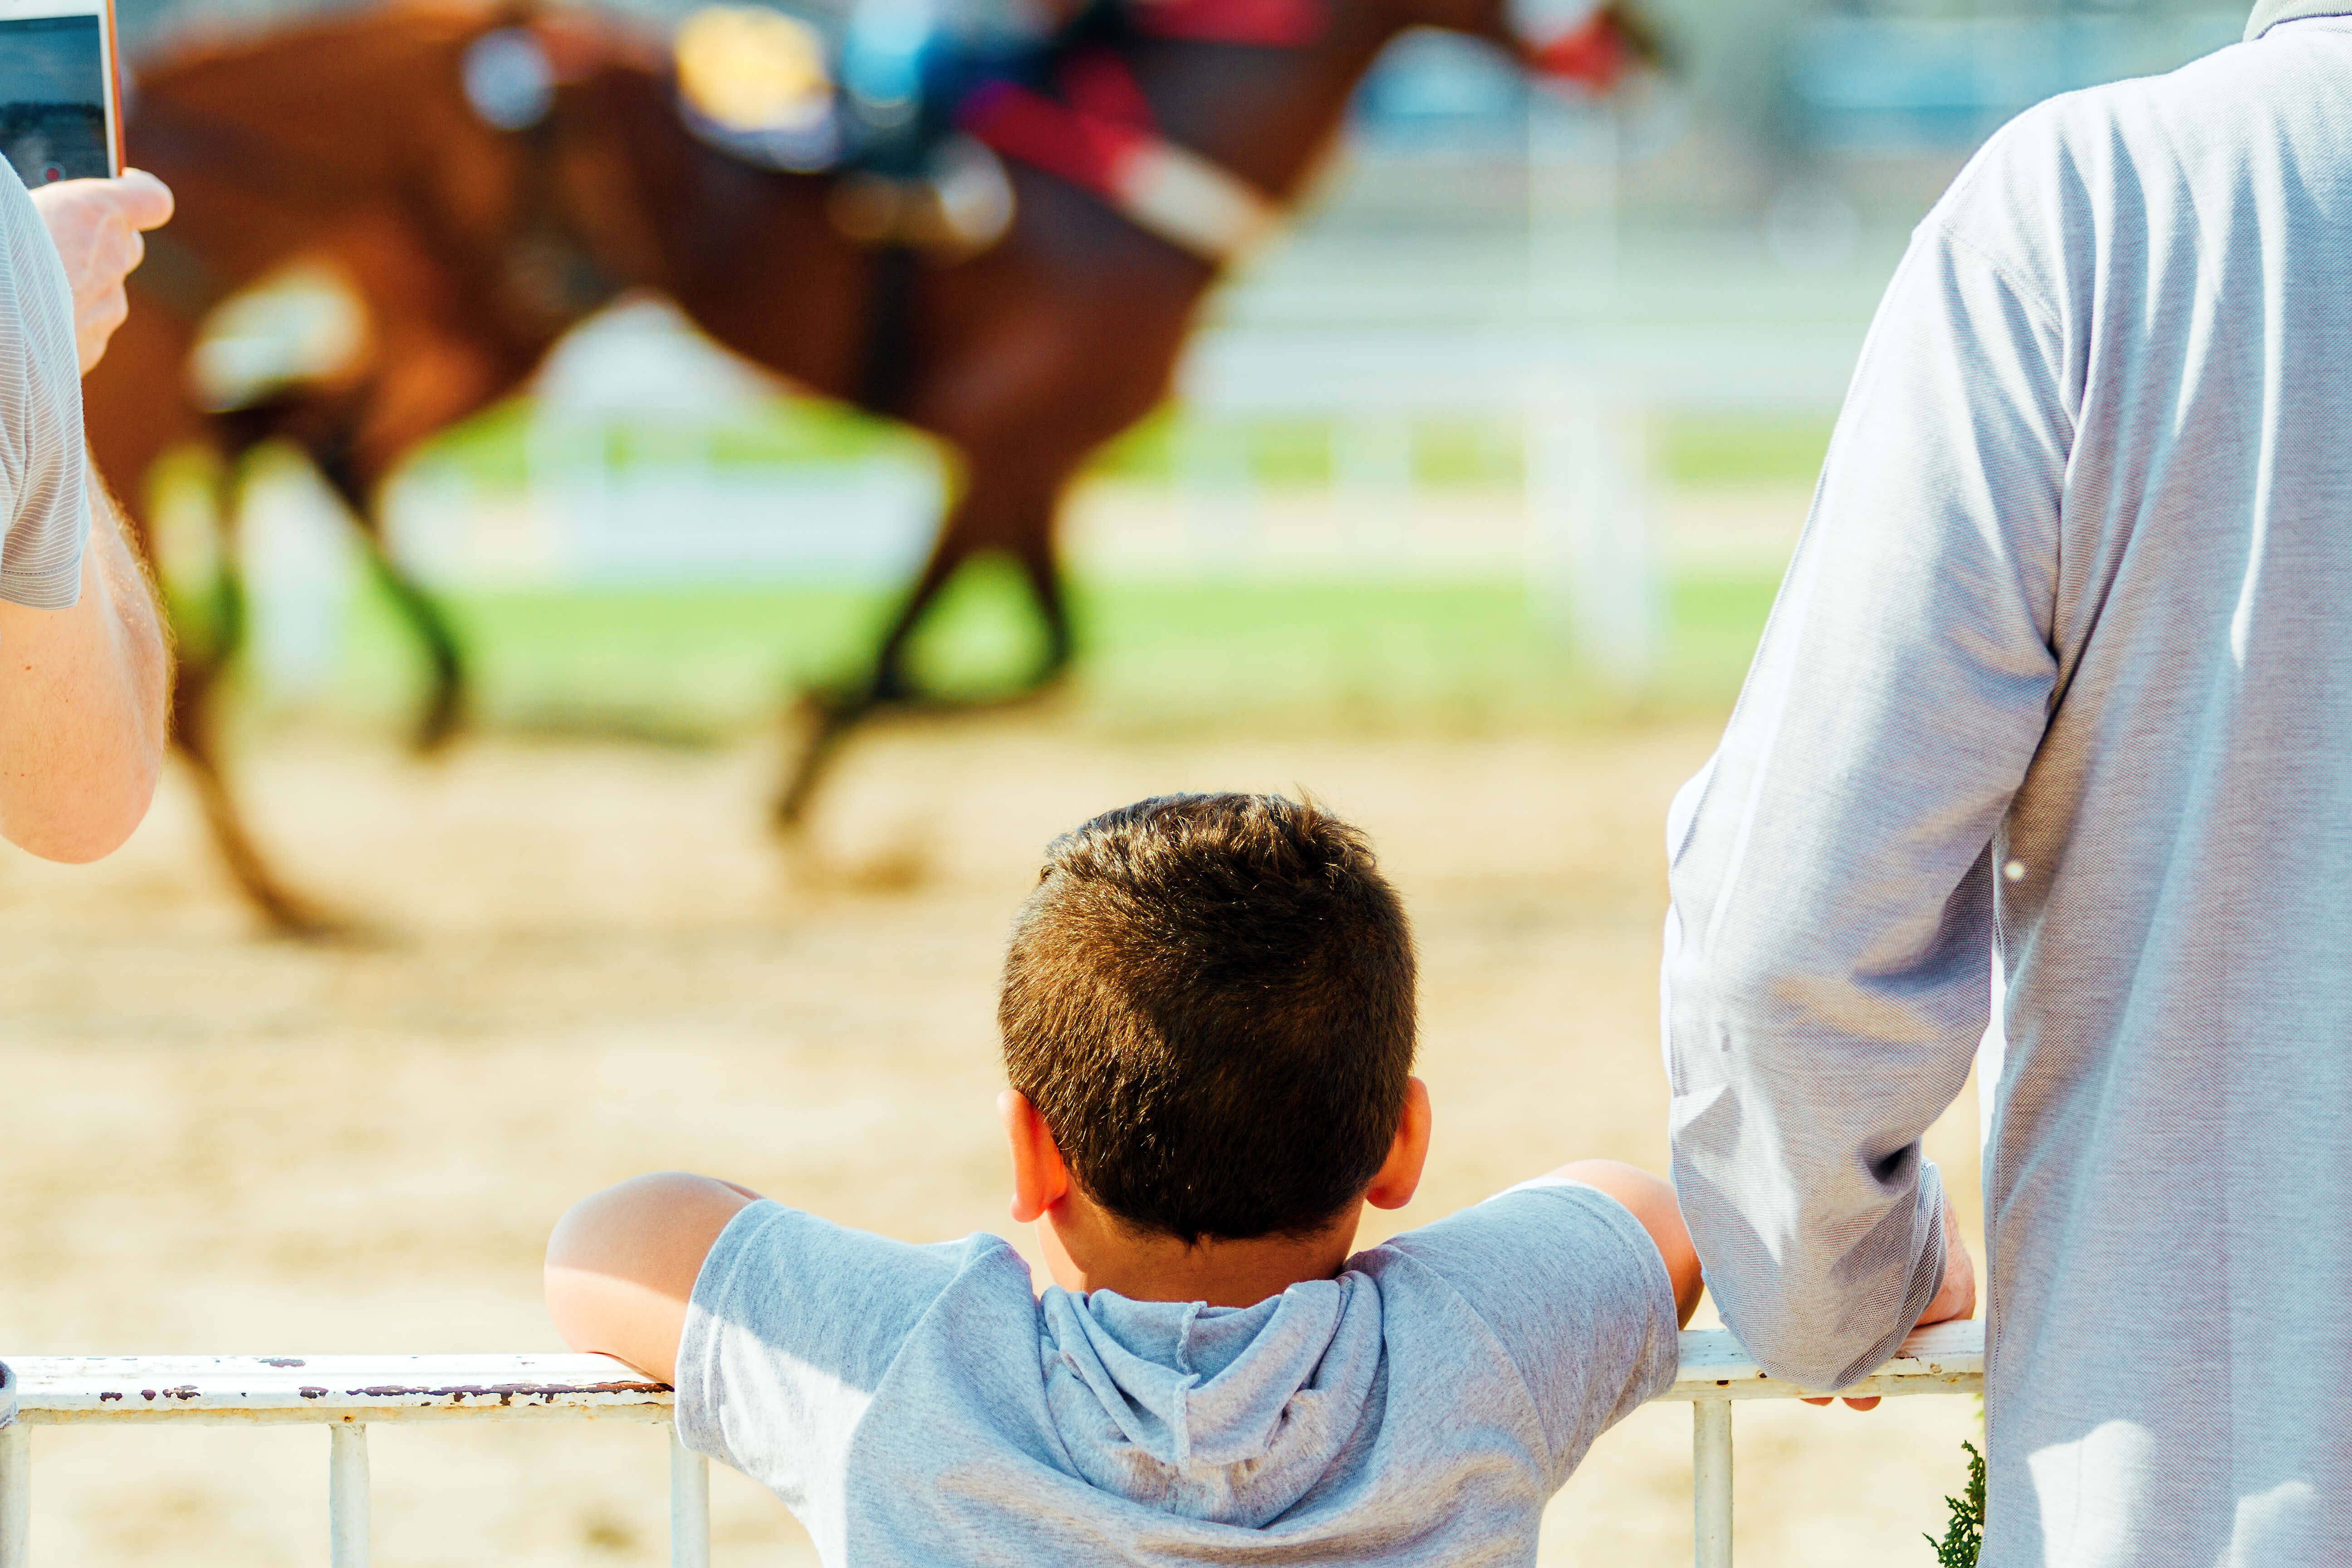 Child looking at a horse race next to an adult and horse on background